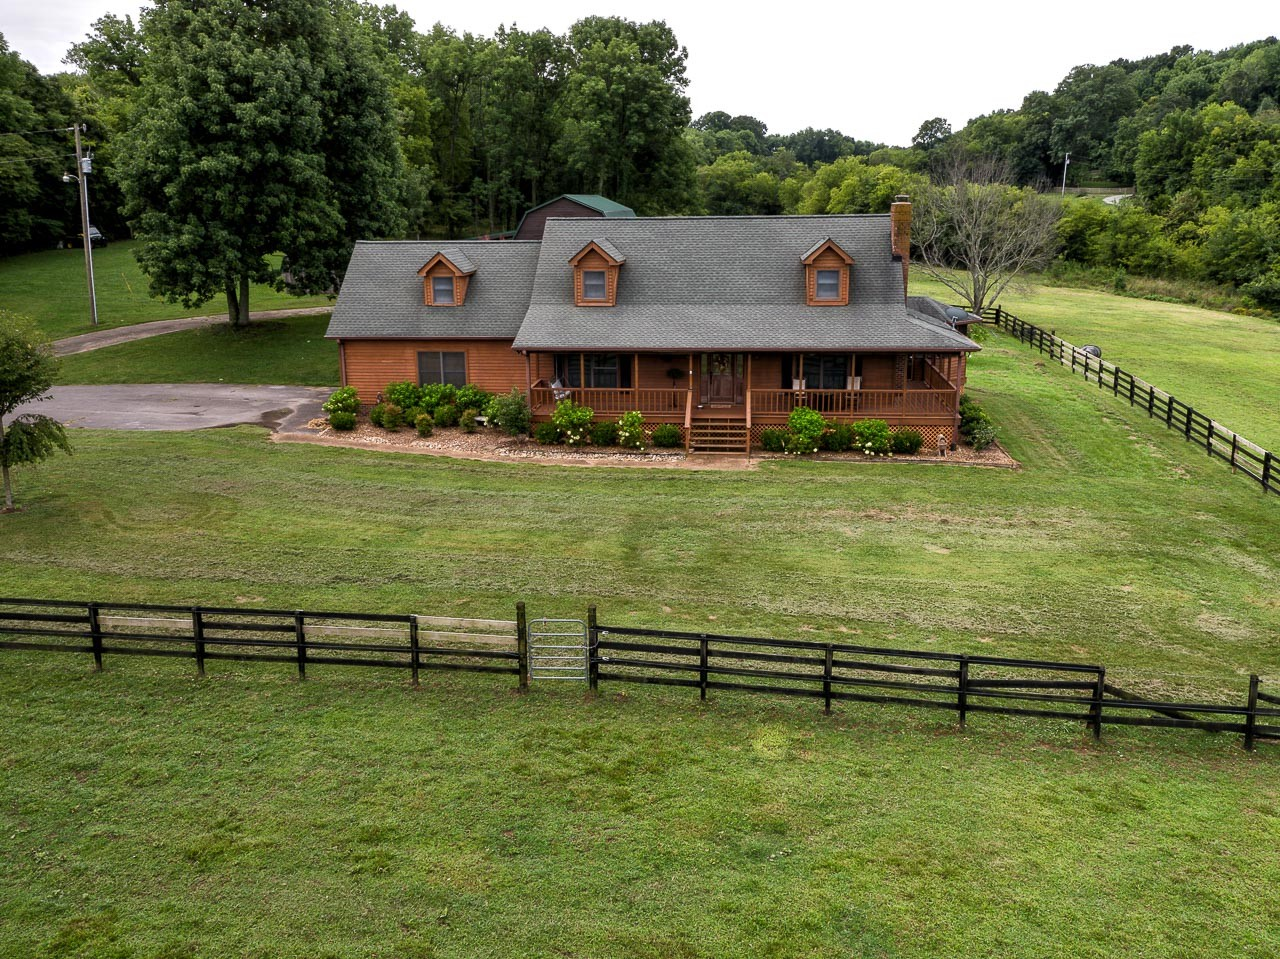 Beautiful 18+/- acre setting. 2,500+/- sq. ft. home with 3 bedrooms & 2.5 baths. Fenced acreage + additional wooded area. Great barn, set up for horses currently, pond with year round water, and place to play and roam. Looking for some acreage set up for a mini farm? Dreaming of all the things you could do if you had a little land? Look no further. Come see us!